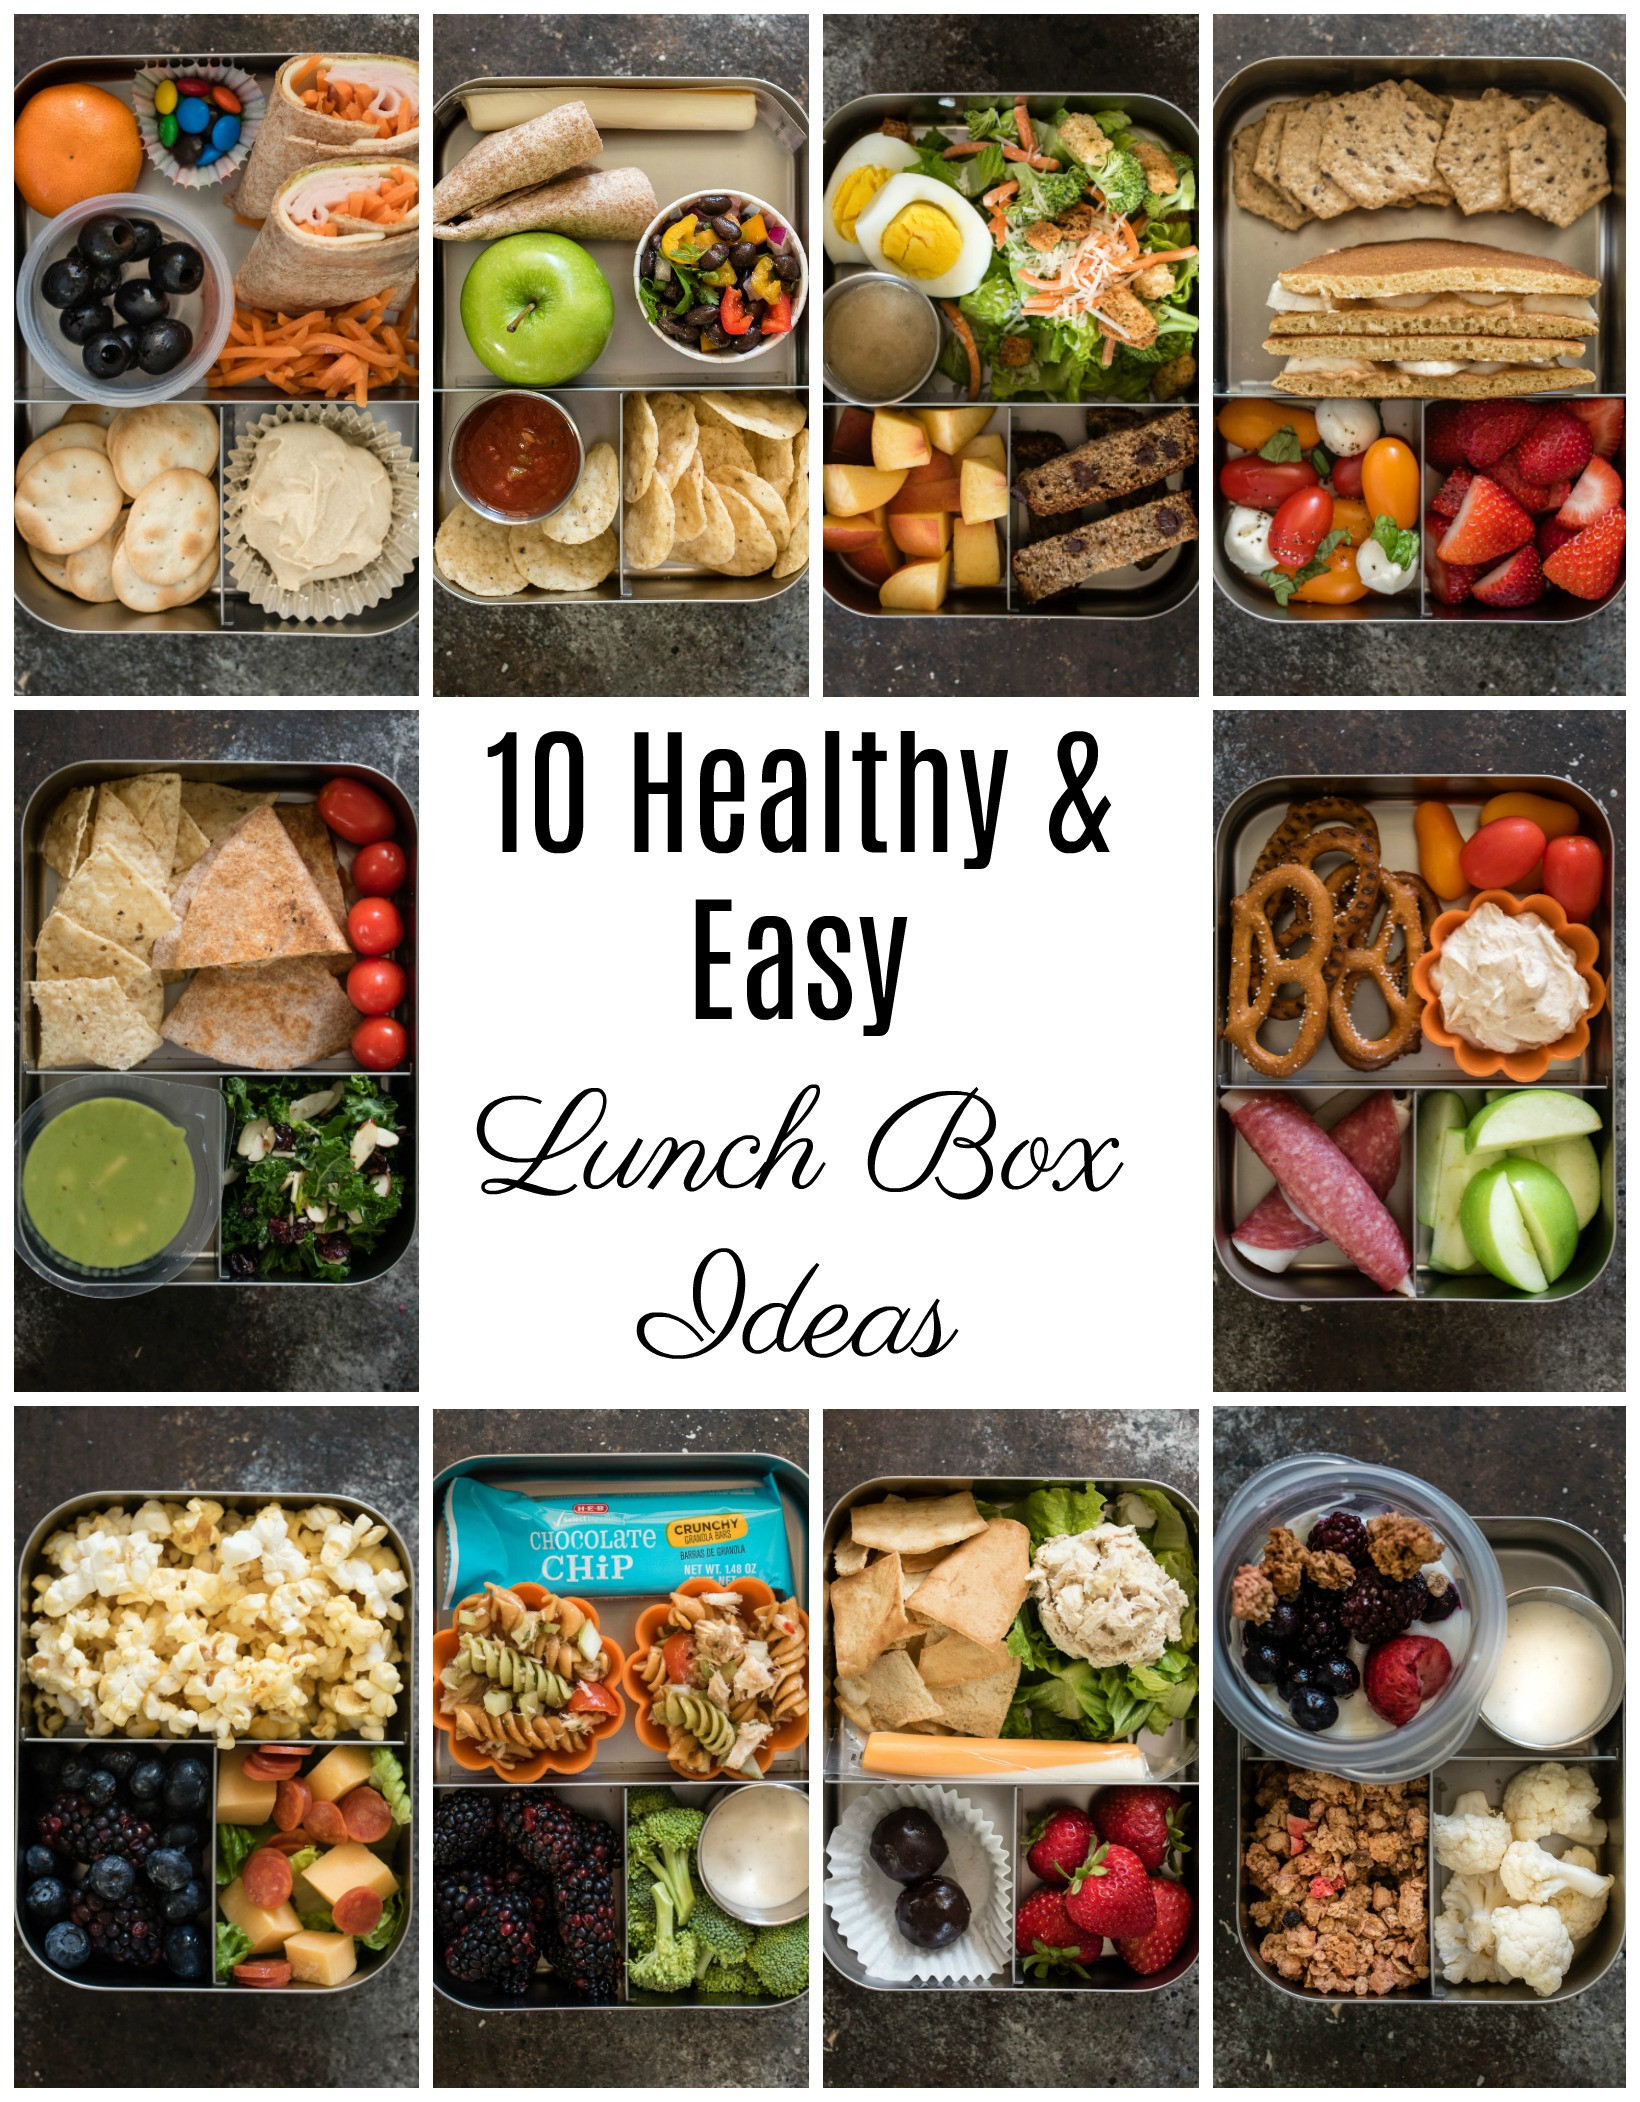 Easy Healthy Lunches For Kids  10 Healthy Lunch Box Ideas